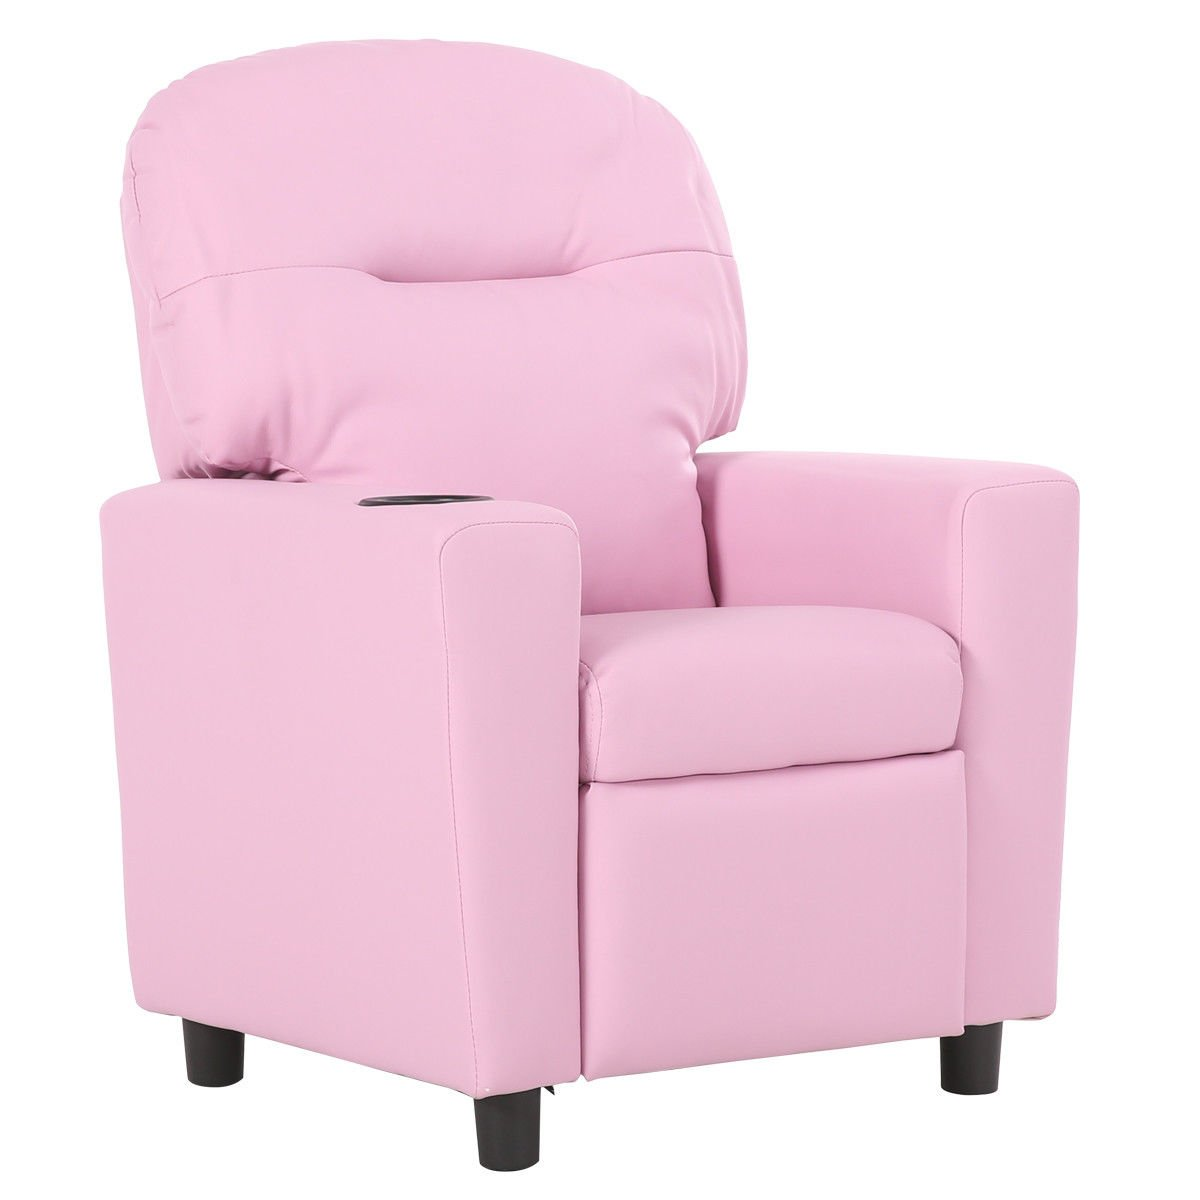 Pink Wood +PU + sponge Kid Armchair With Ebook